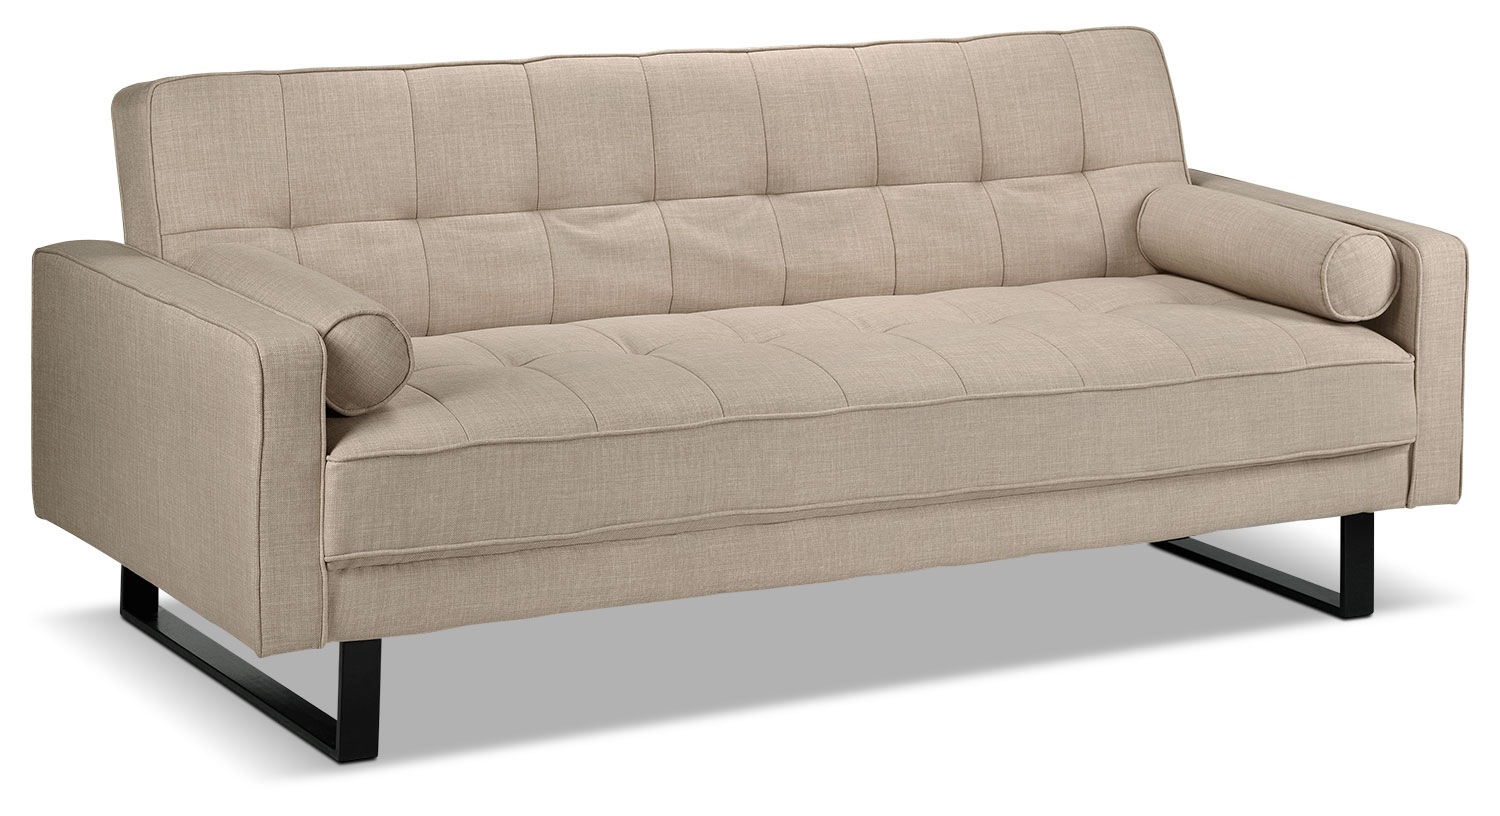 Living Room Furniture - Medina Convertible Sofa - Beige